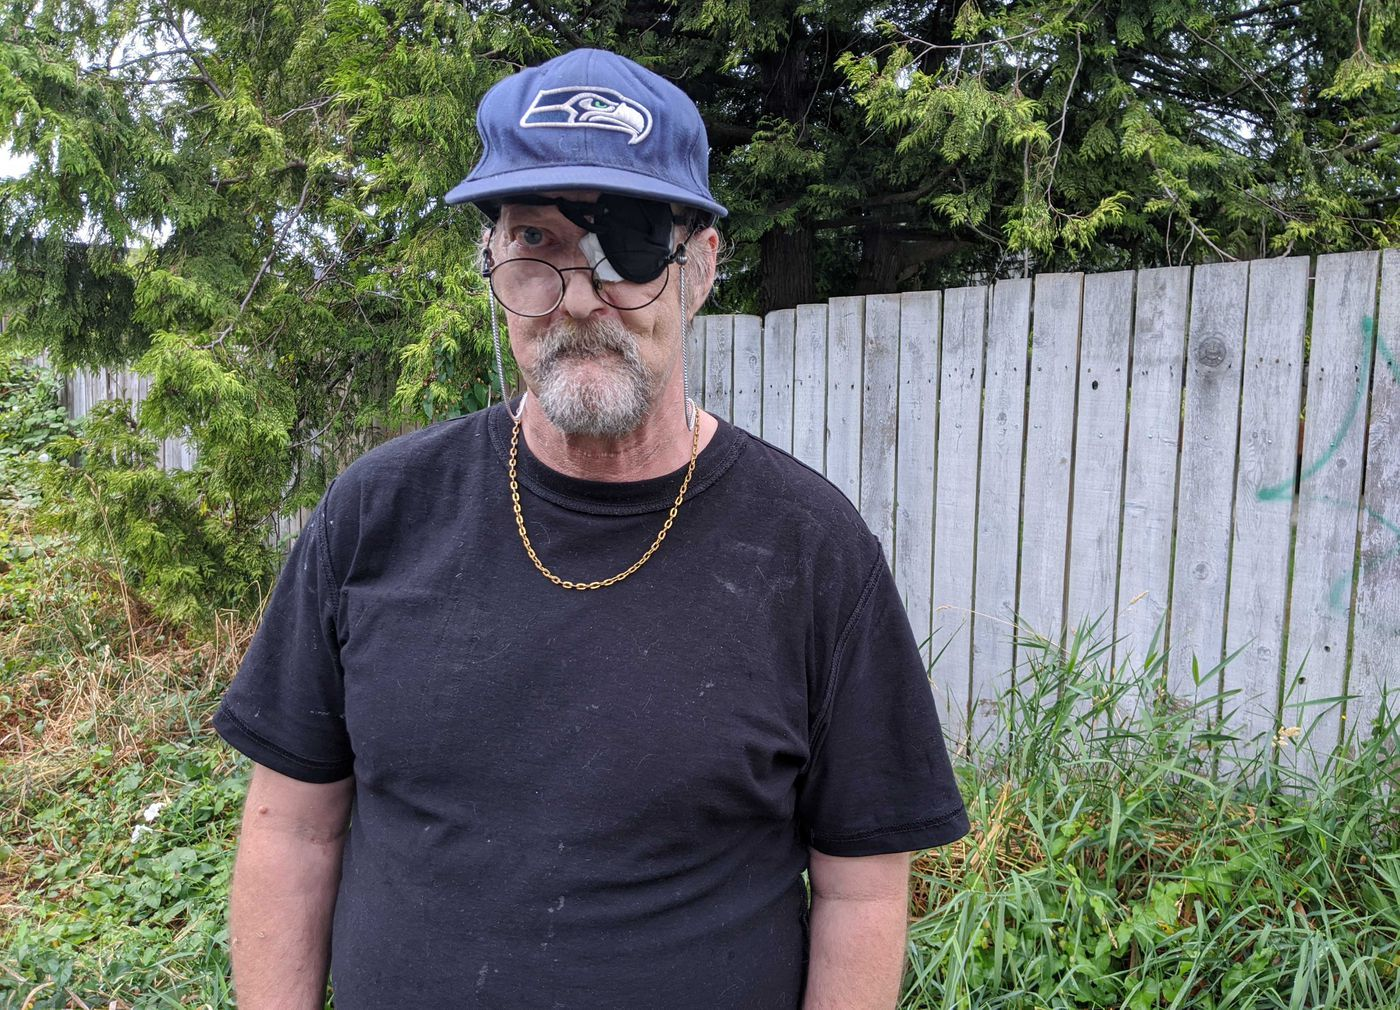 Richard Bingham lives in Bellingham, Washington. He was acquitted of the 1996 rape and murder of Jessica Baggen in Sitka, Alaska, in 1997. Photographed Aug 21, 2020. (Michelle Theriault Boots / ADN)